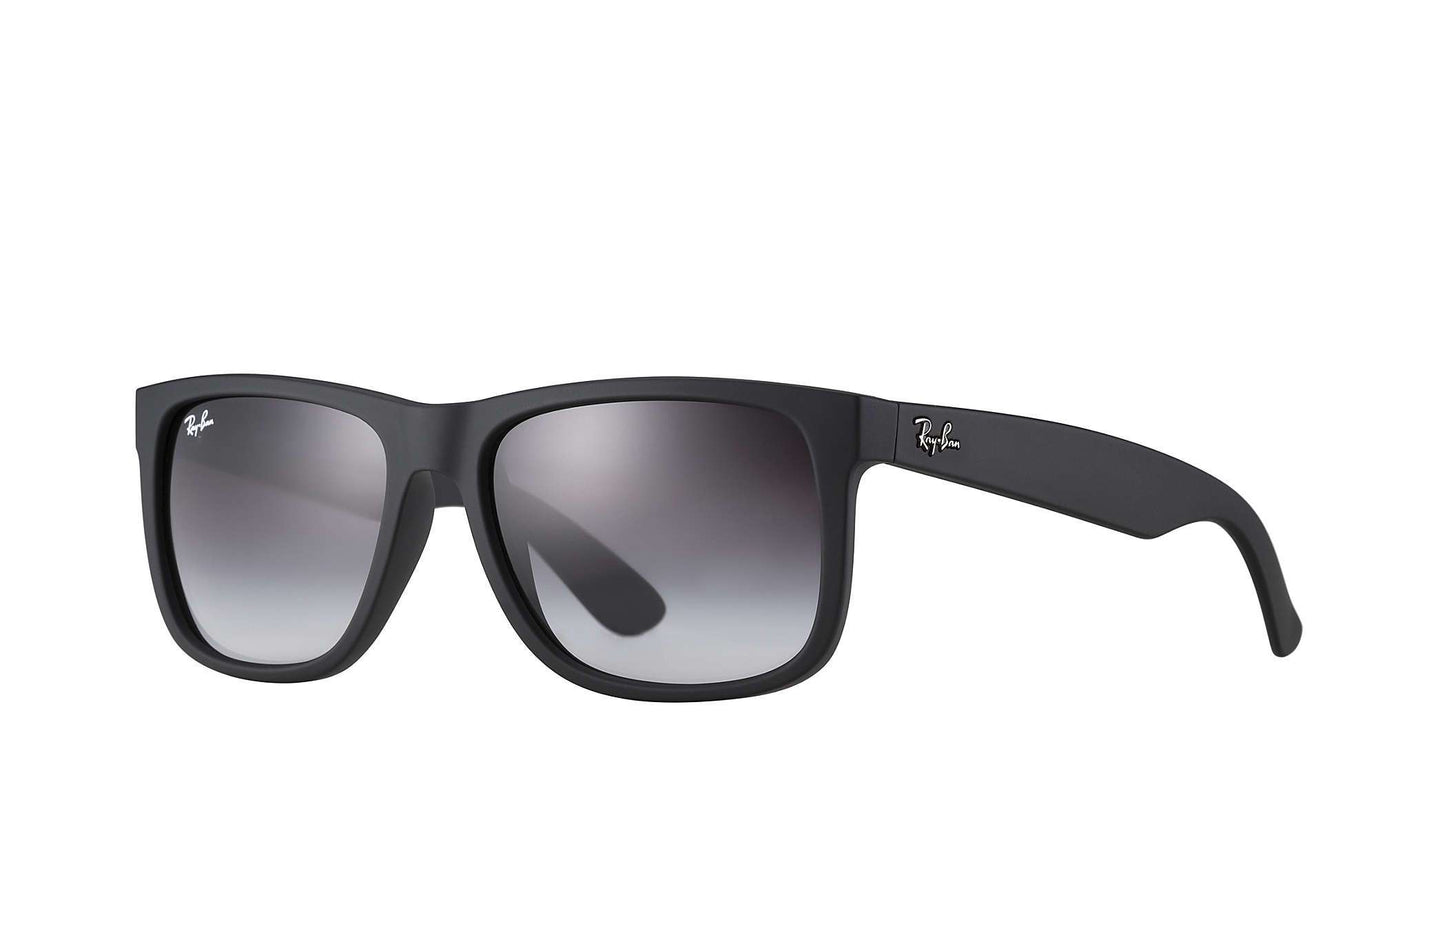 shades-of-charleston - Ray-Ban 4165 Justin - Ray-Ban - Sunglasses